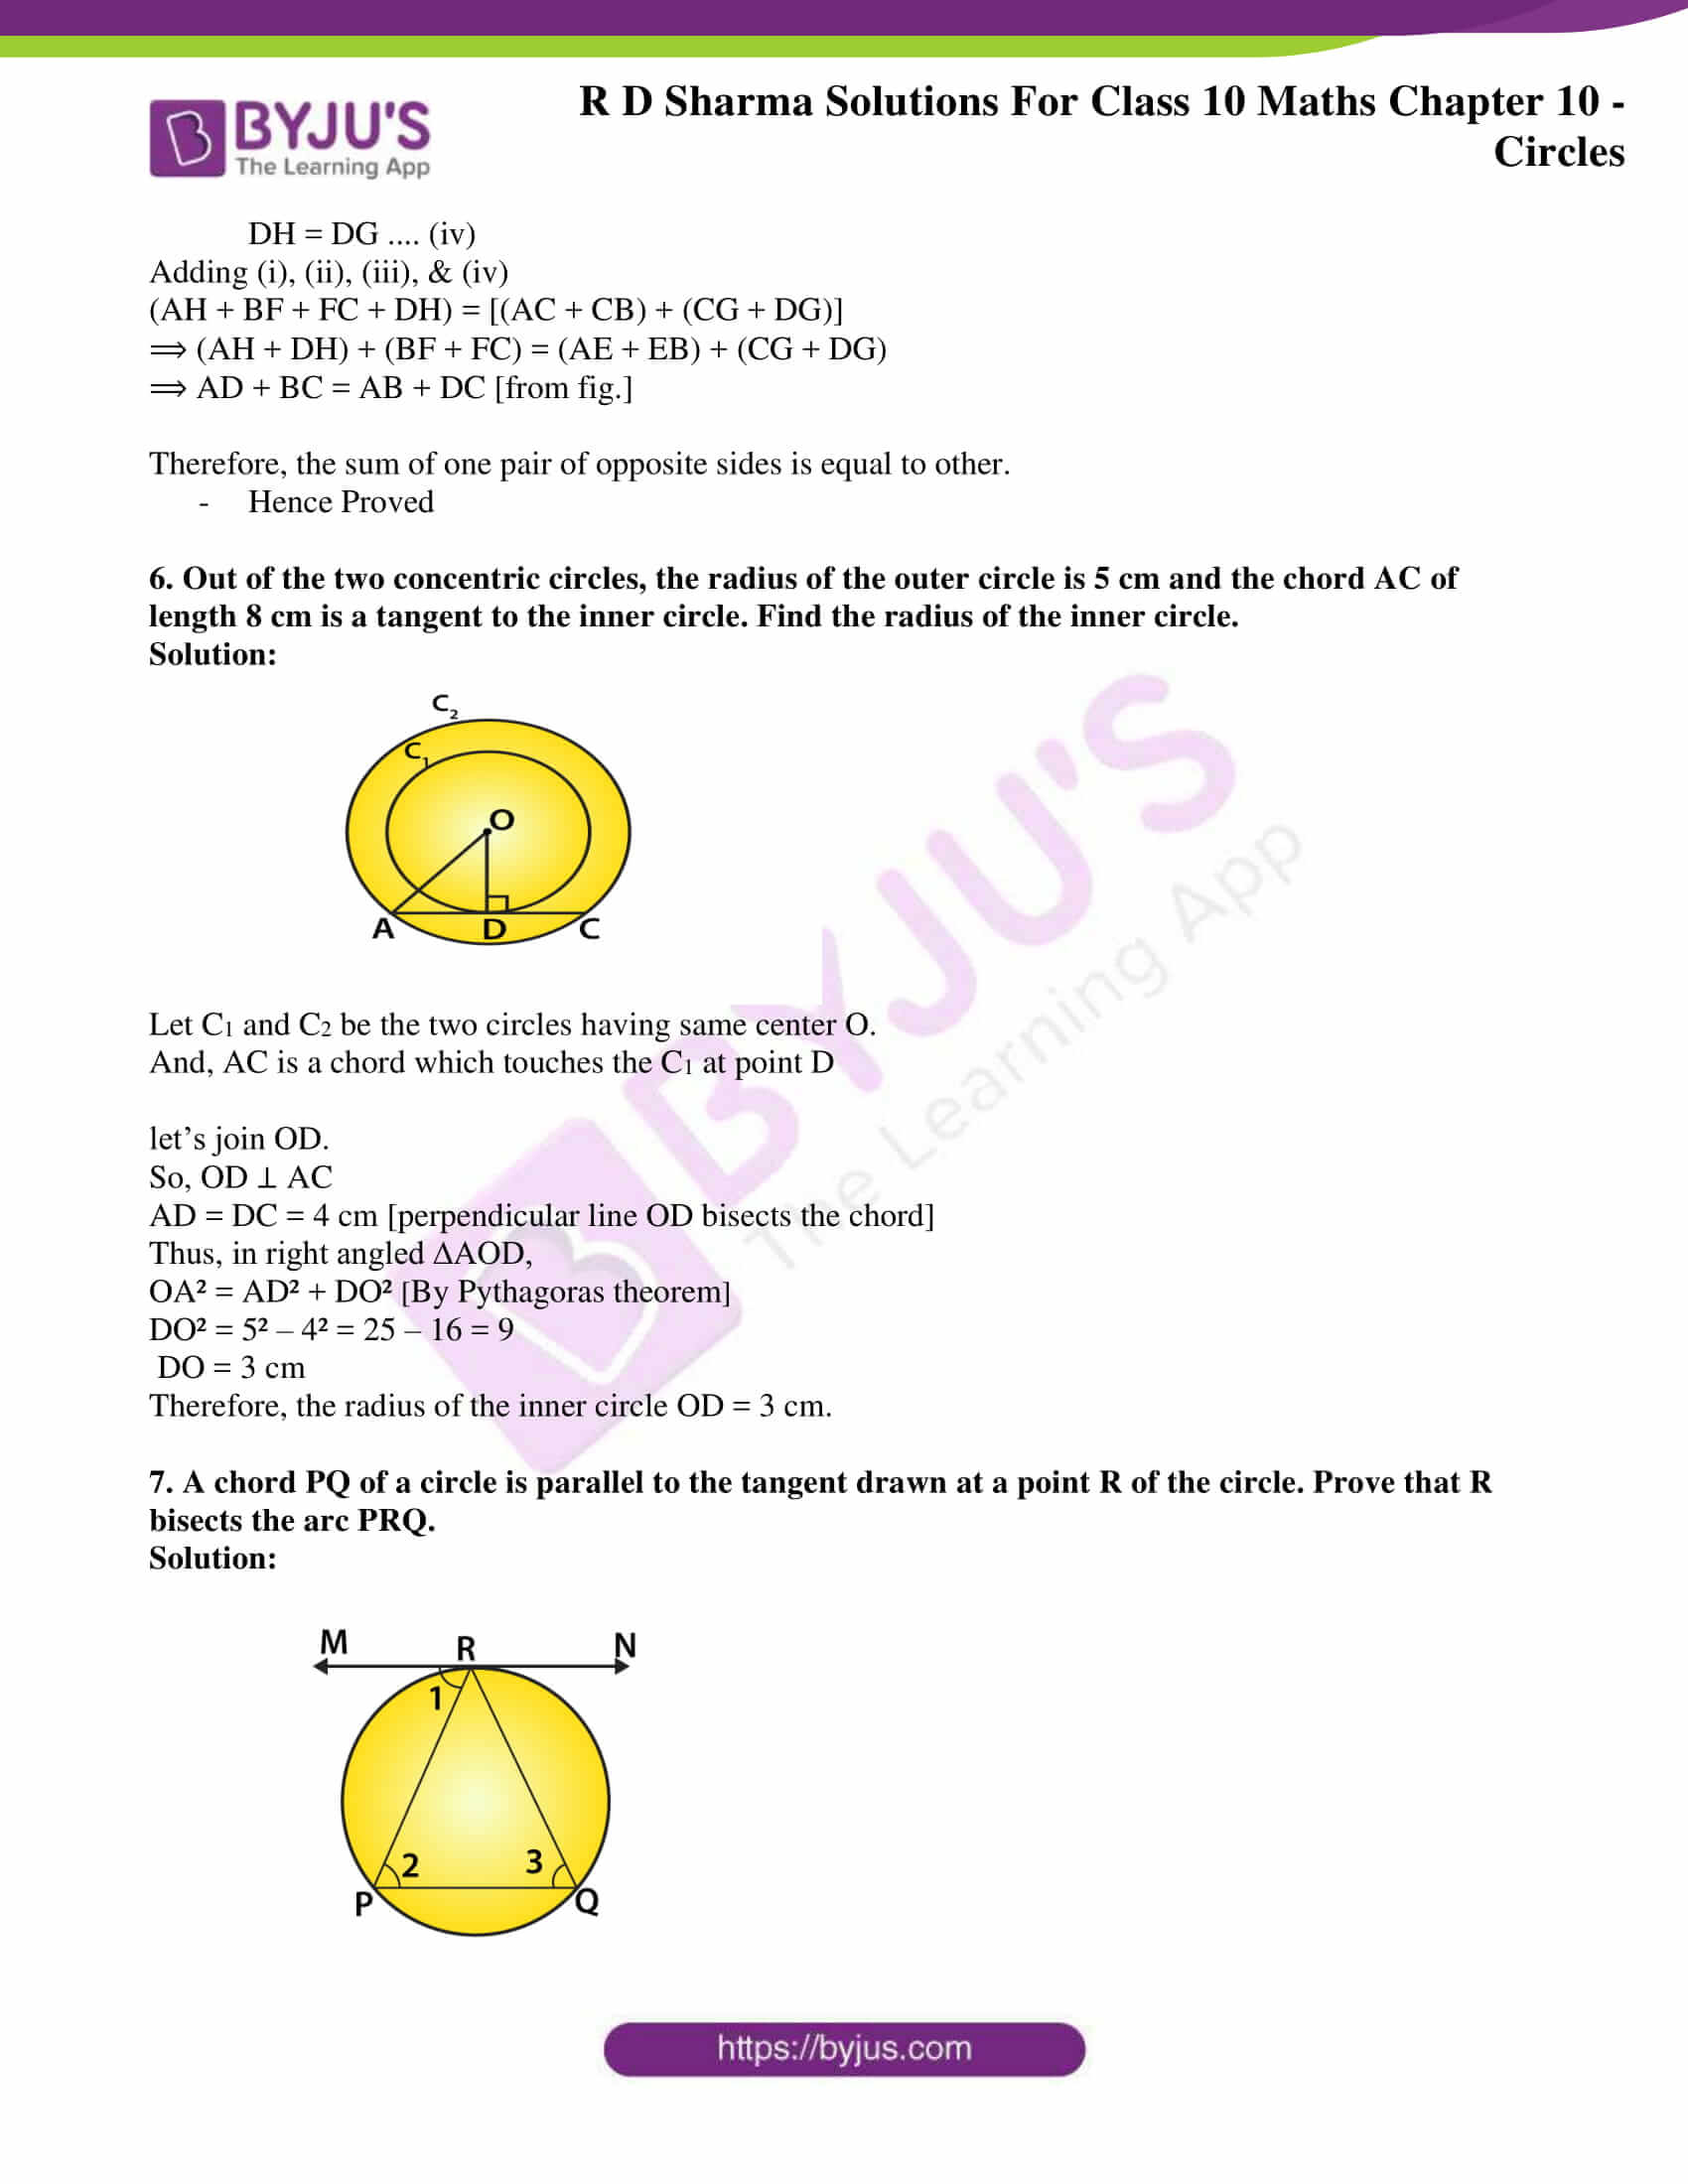 rd sharma solutions for class 10 chapter 10